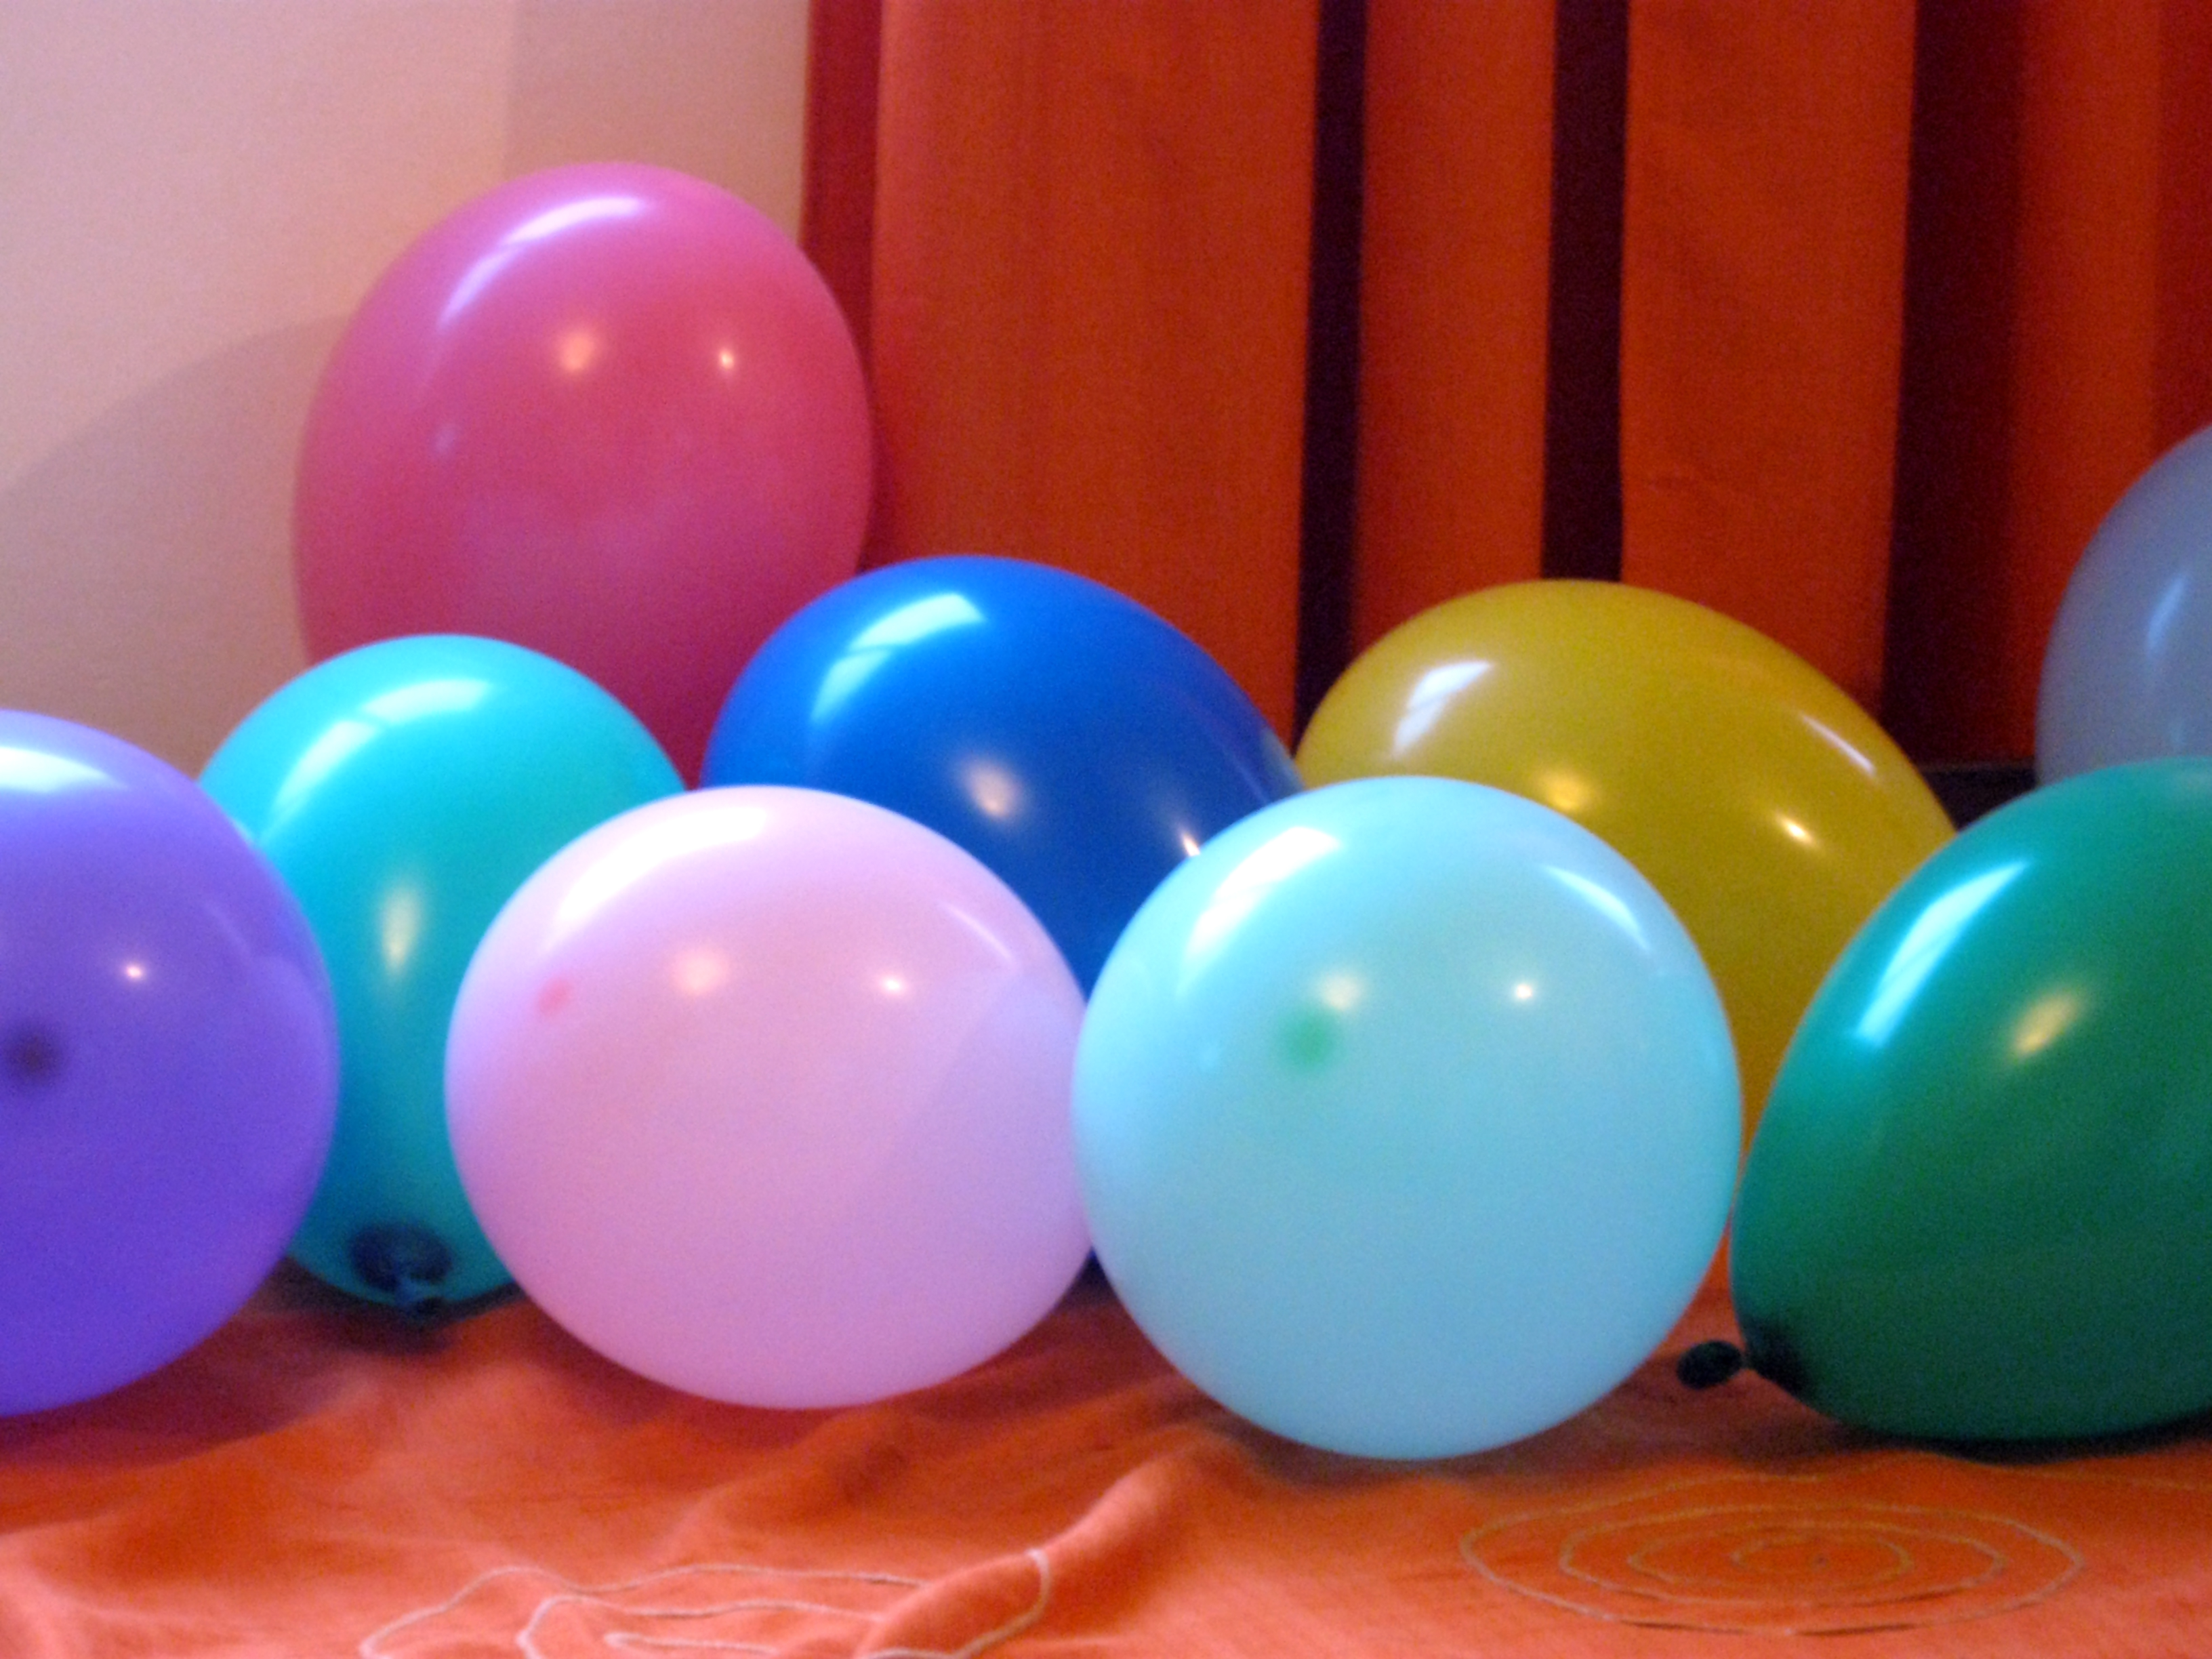 Stopping Bullying With Balloons | BullyFreeSchools